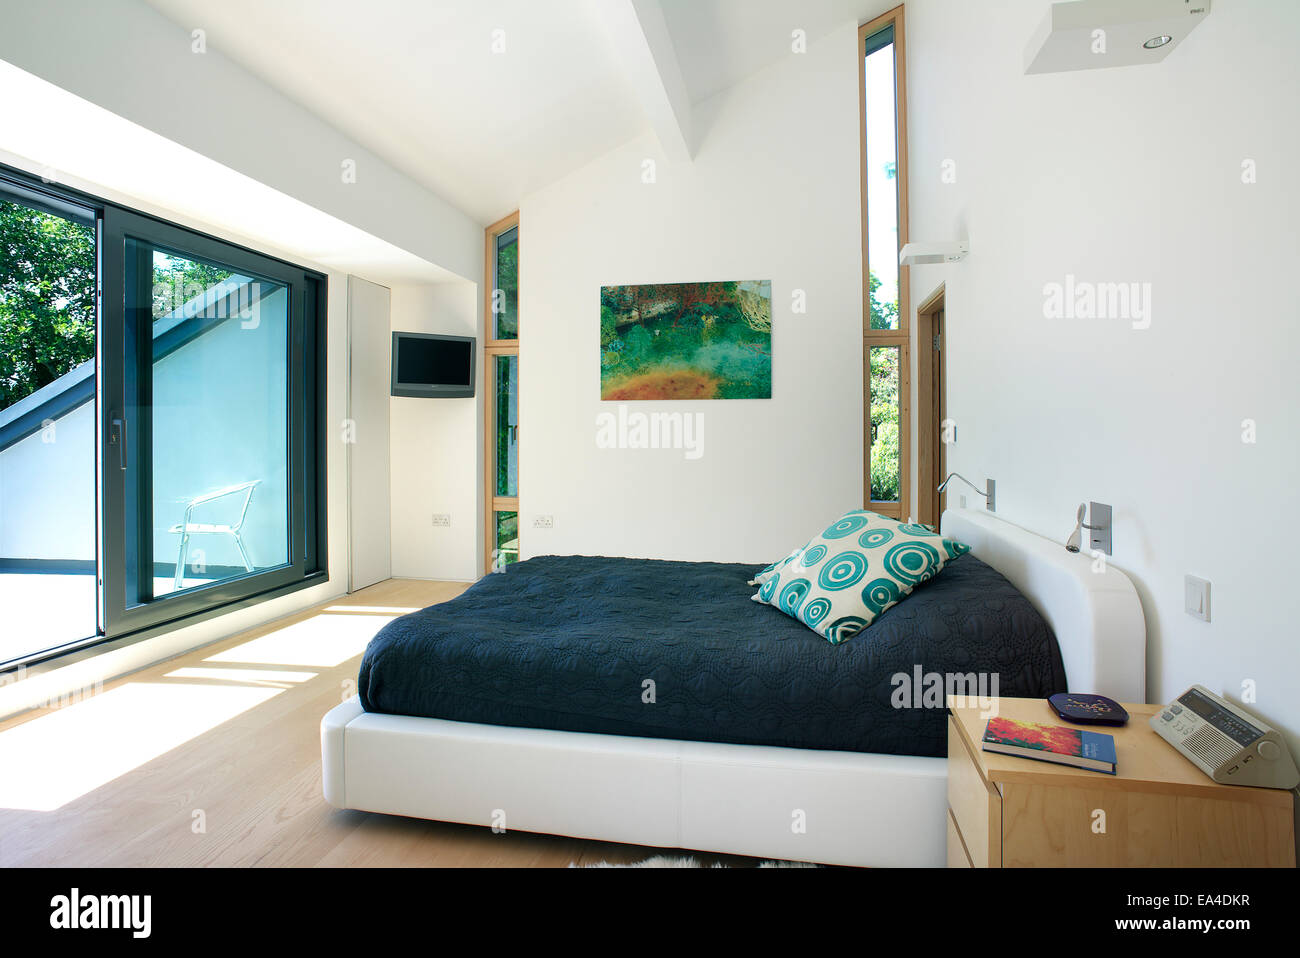 Double Bedroom With Sliding Doors To Balcony In Residential House